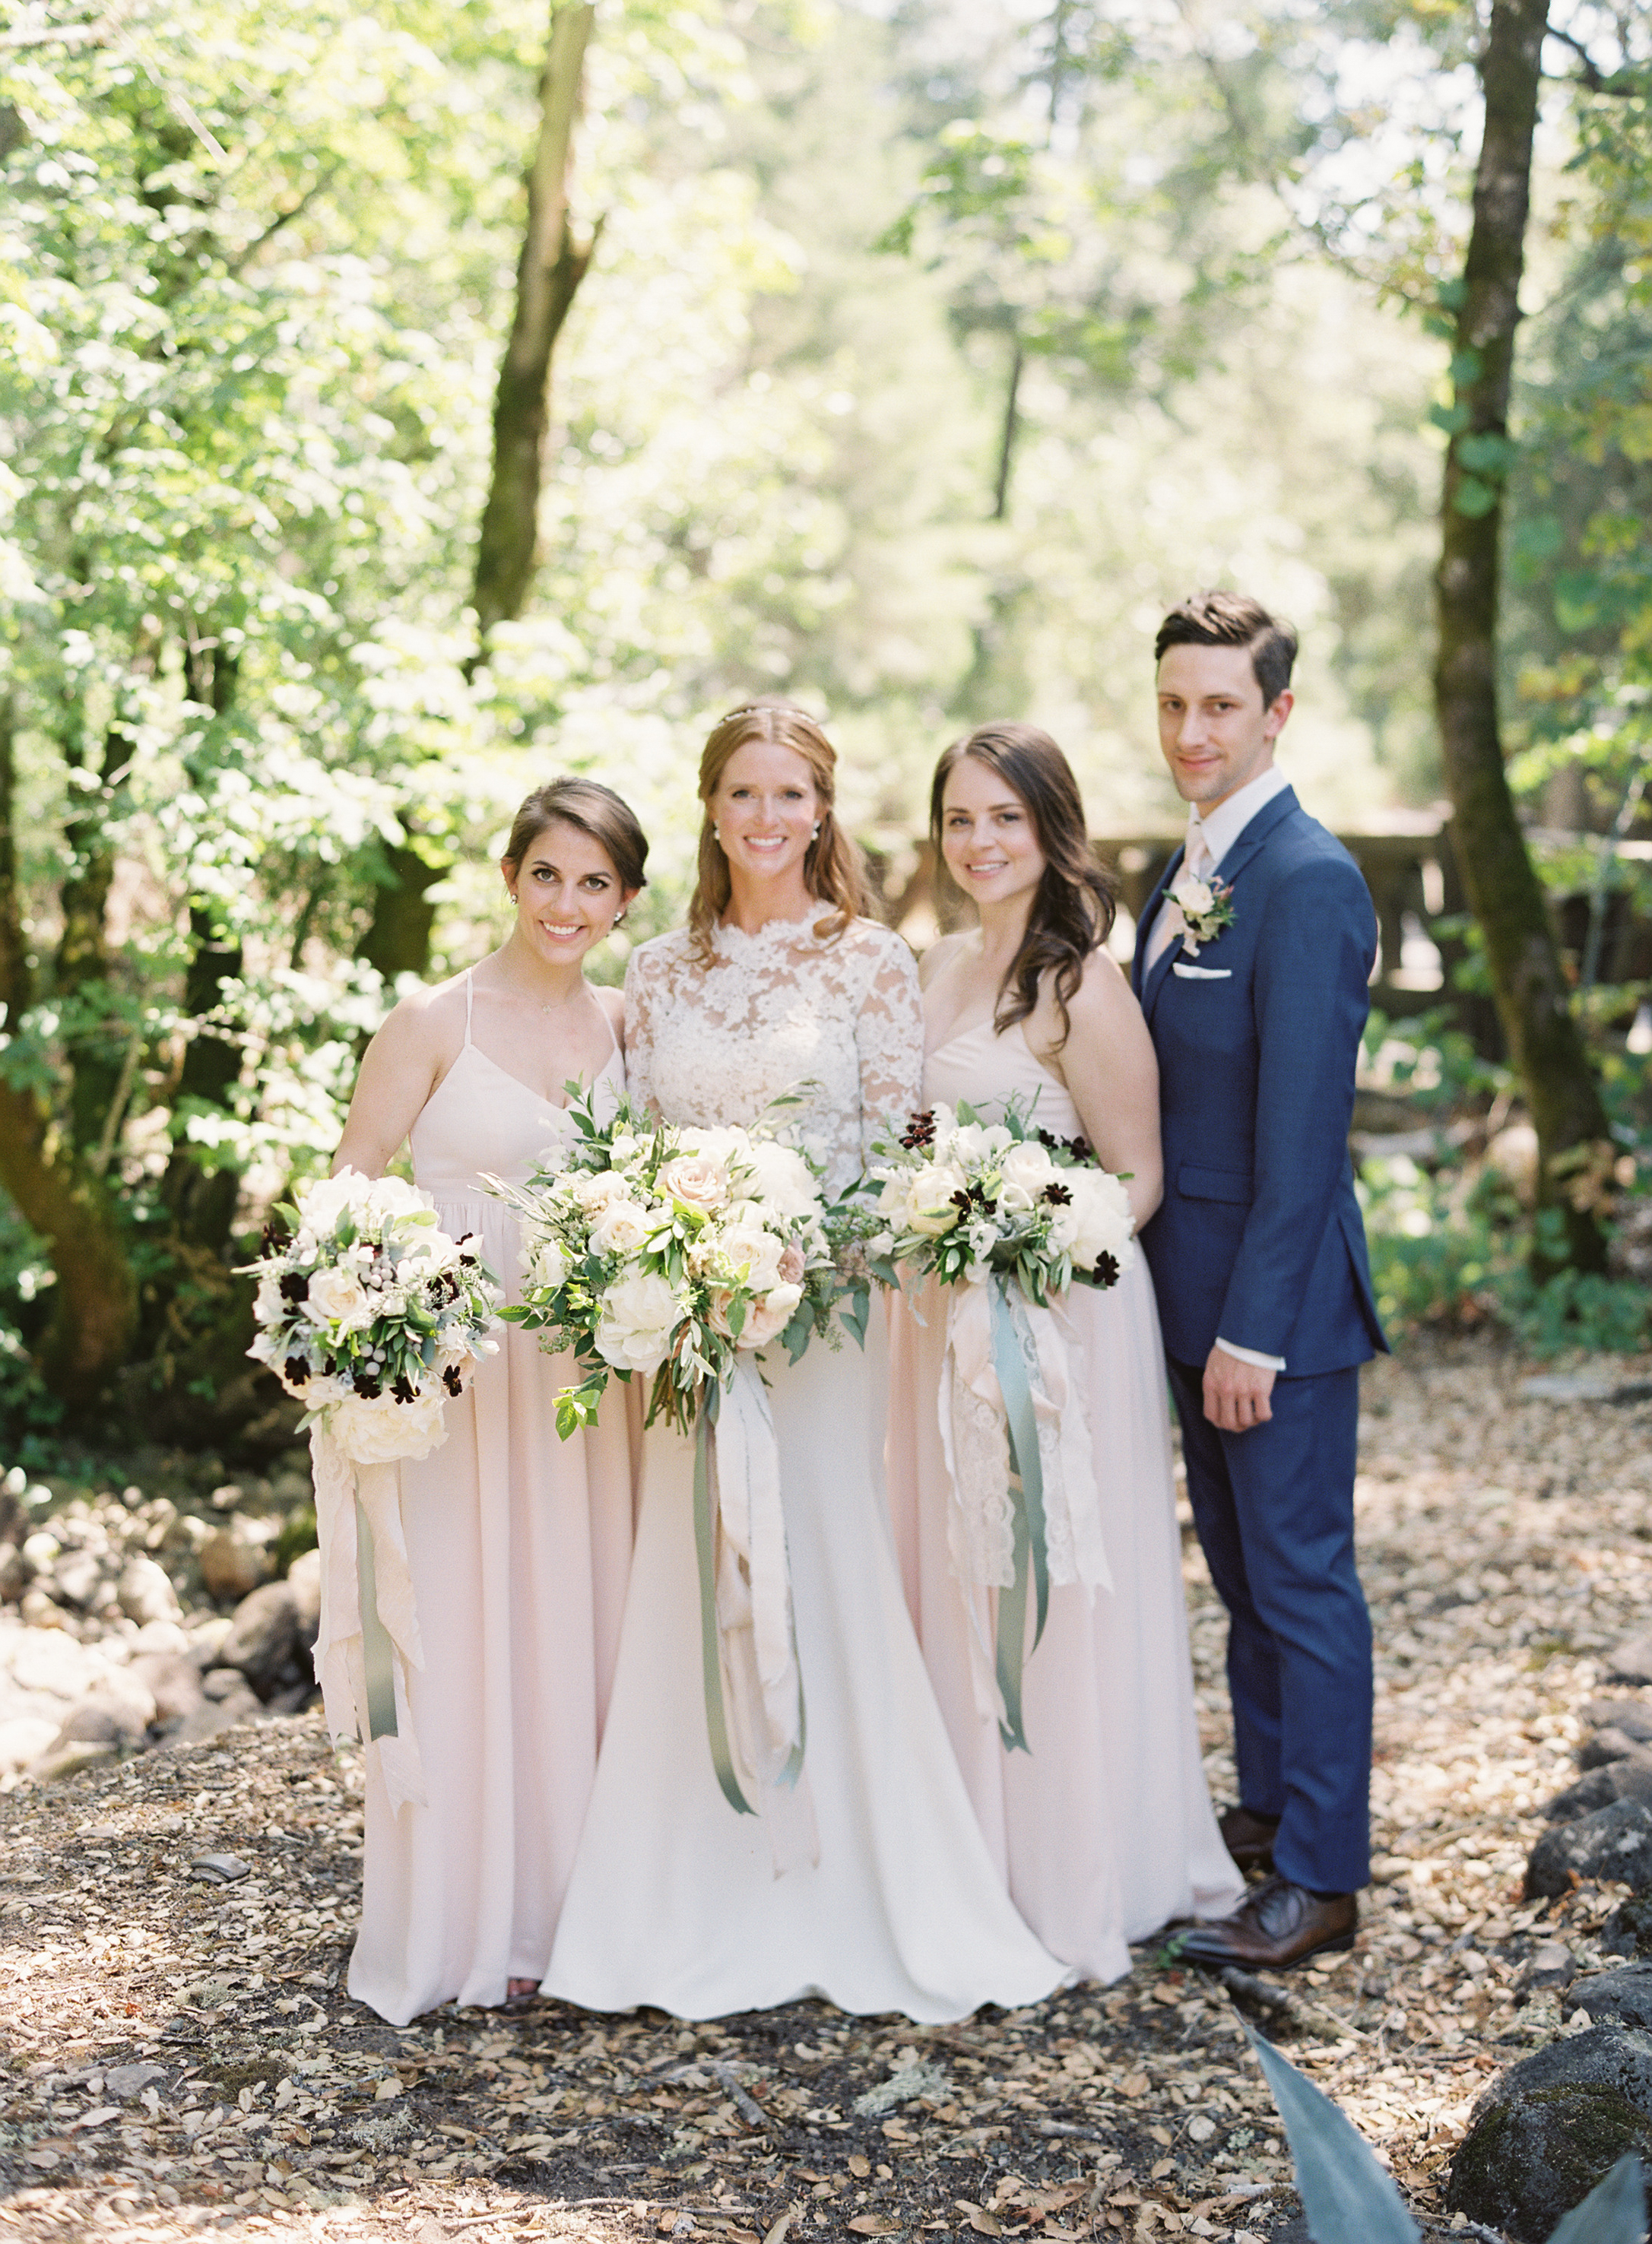 Napa Wedding Photographer - Meghan Mehan Photography _020.jpg